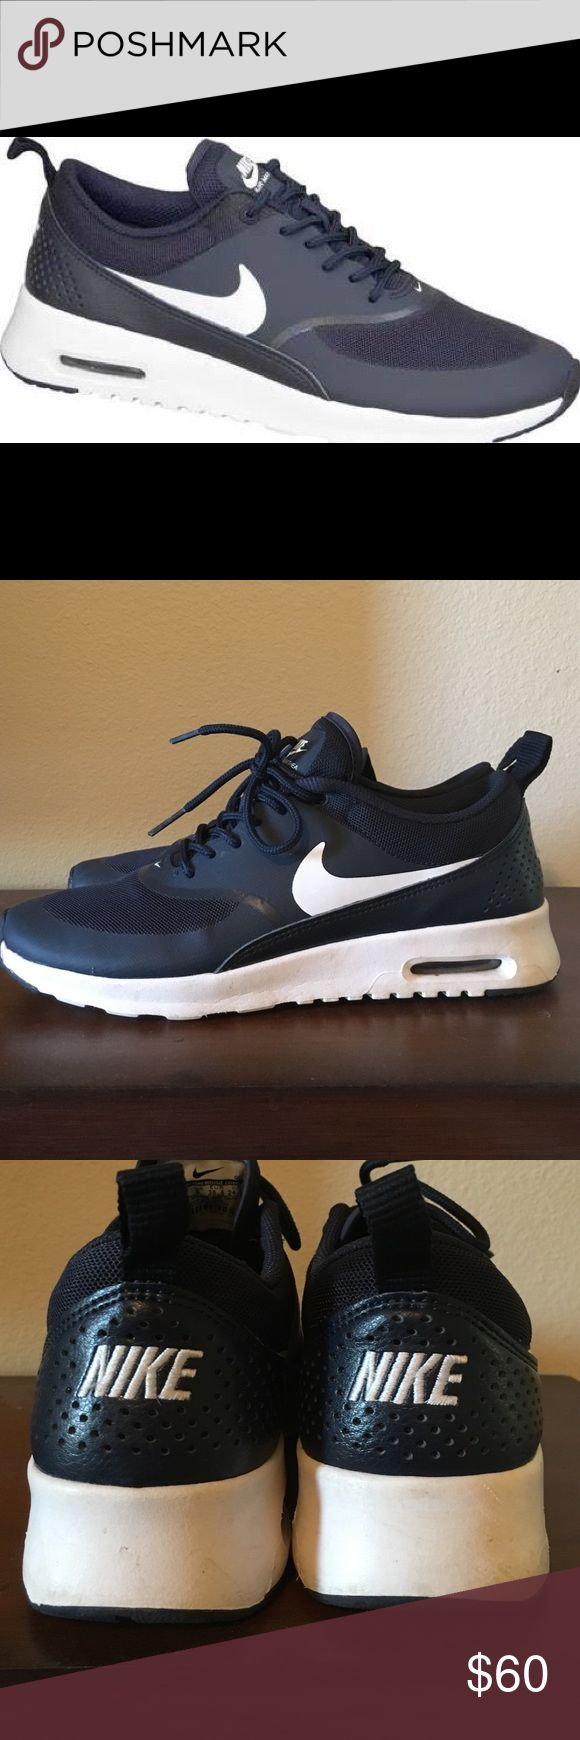 Air Max Thea Navy blue in color. Worn twice. They run narrow and I have a wide foot so it just didn't work! Nike Shoes Athletic Shoes